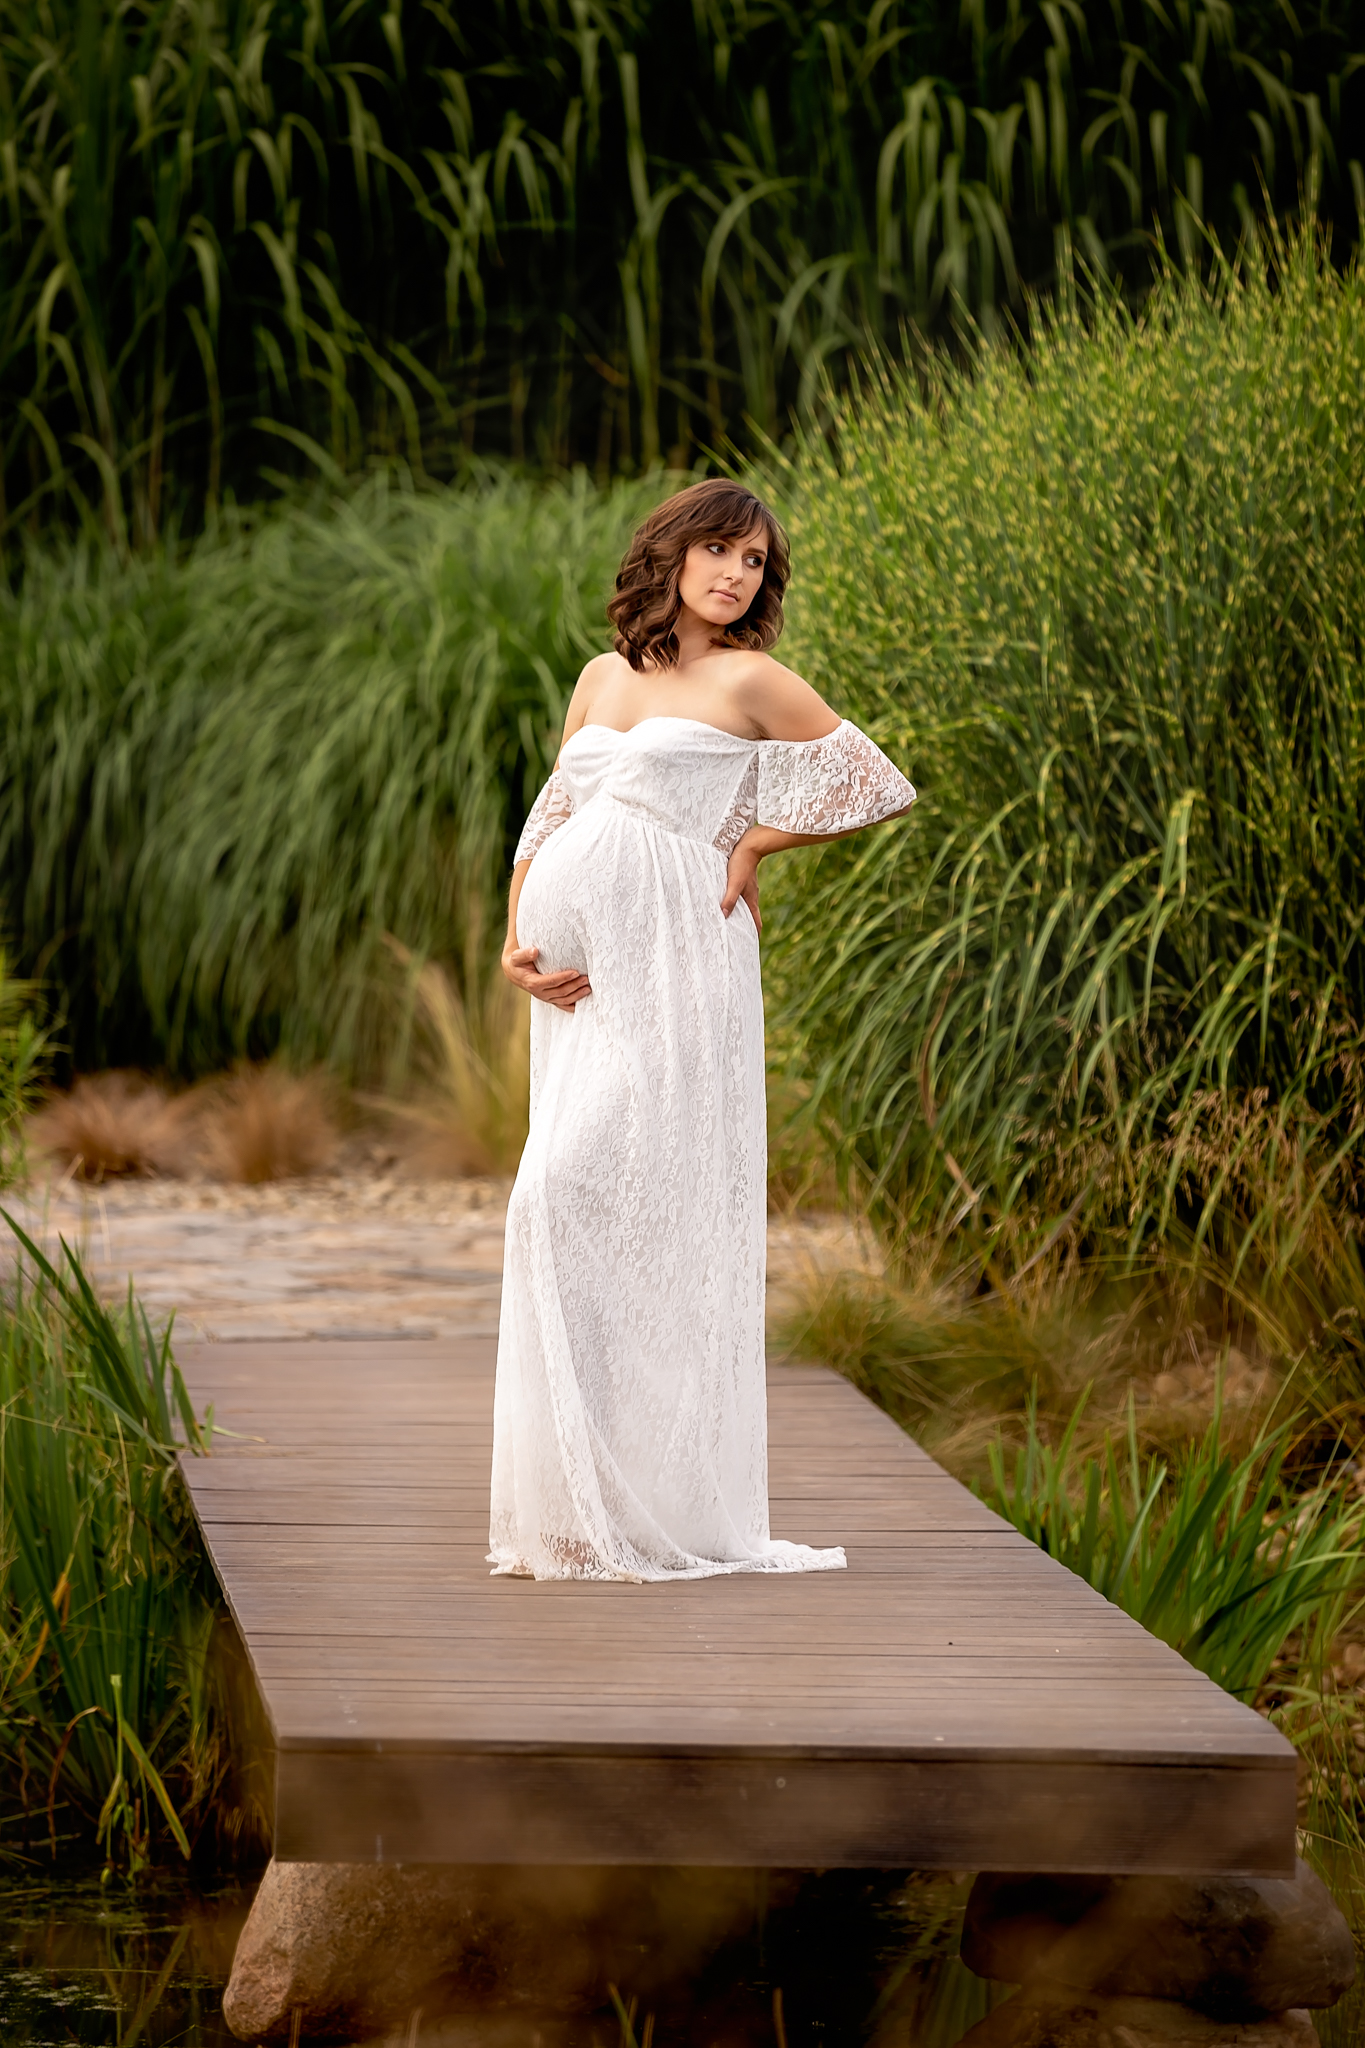 Professional maternity photographer Leeds, York, Bradford, Wakefield, Harrogate: beautiful young pregnant woman posing for a pregnancy photo in a rustic garden